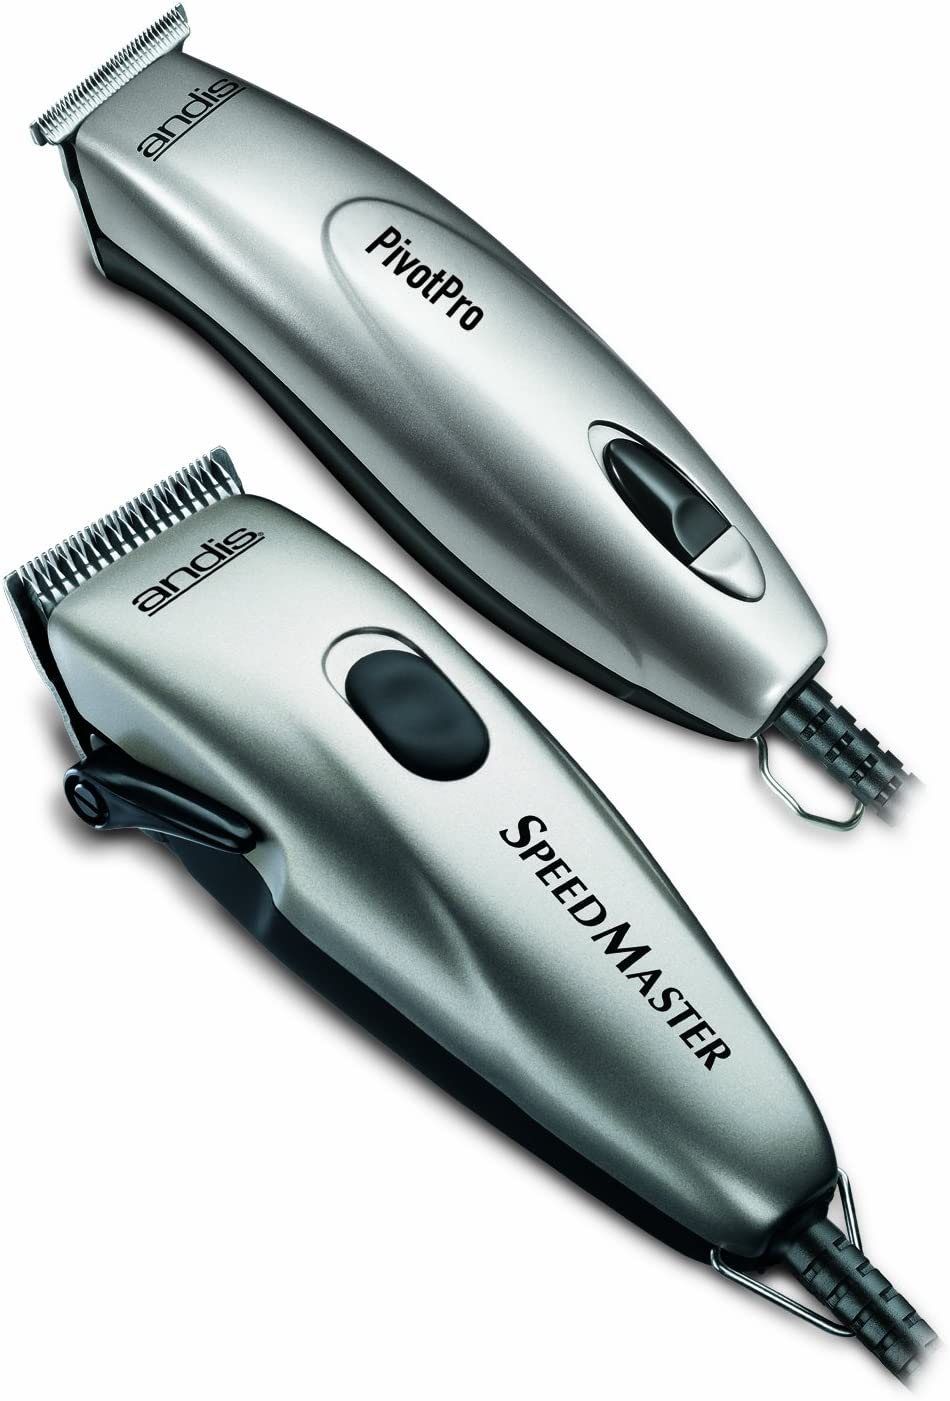 Andis Professional 23965 Pivot Motor Hairclipper Combo by Andis ...